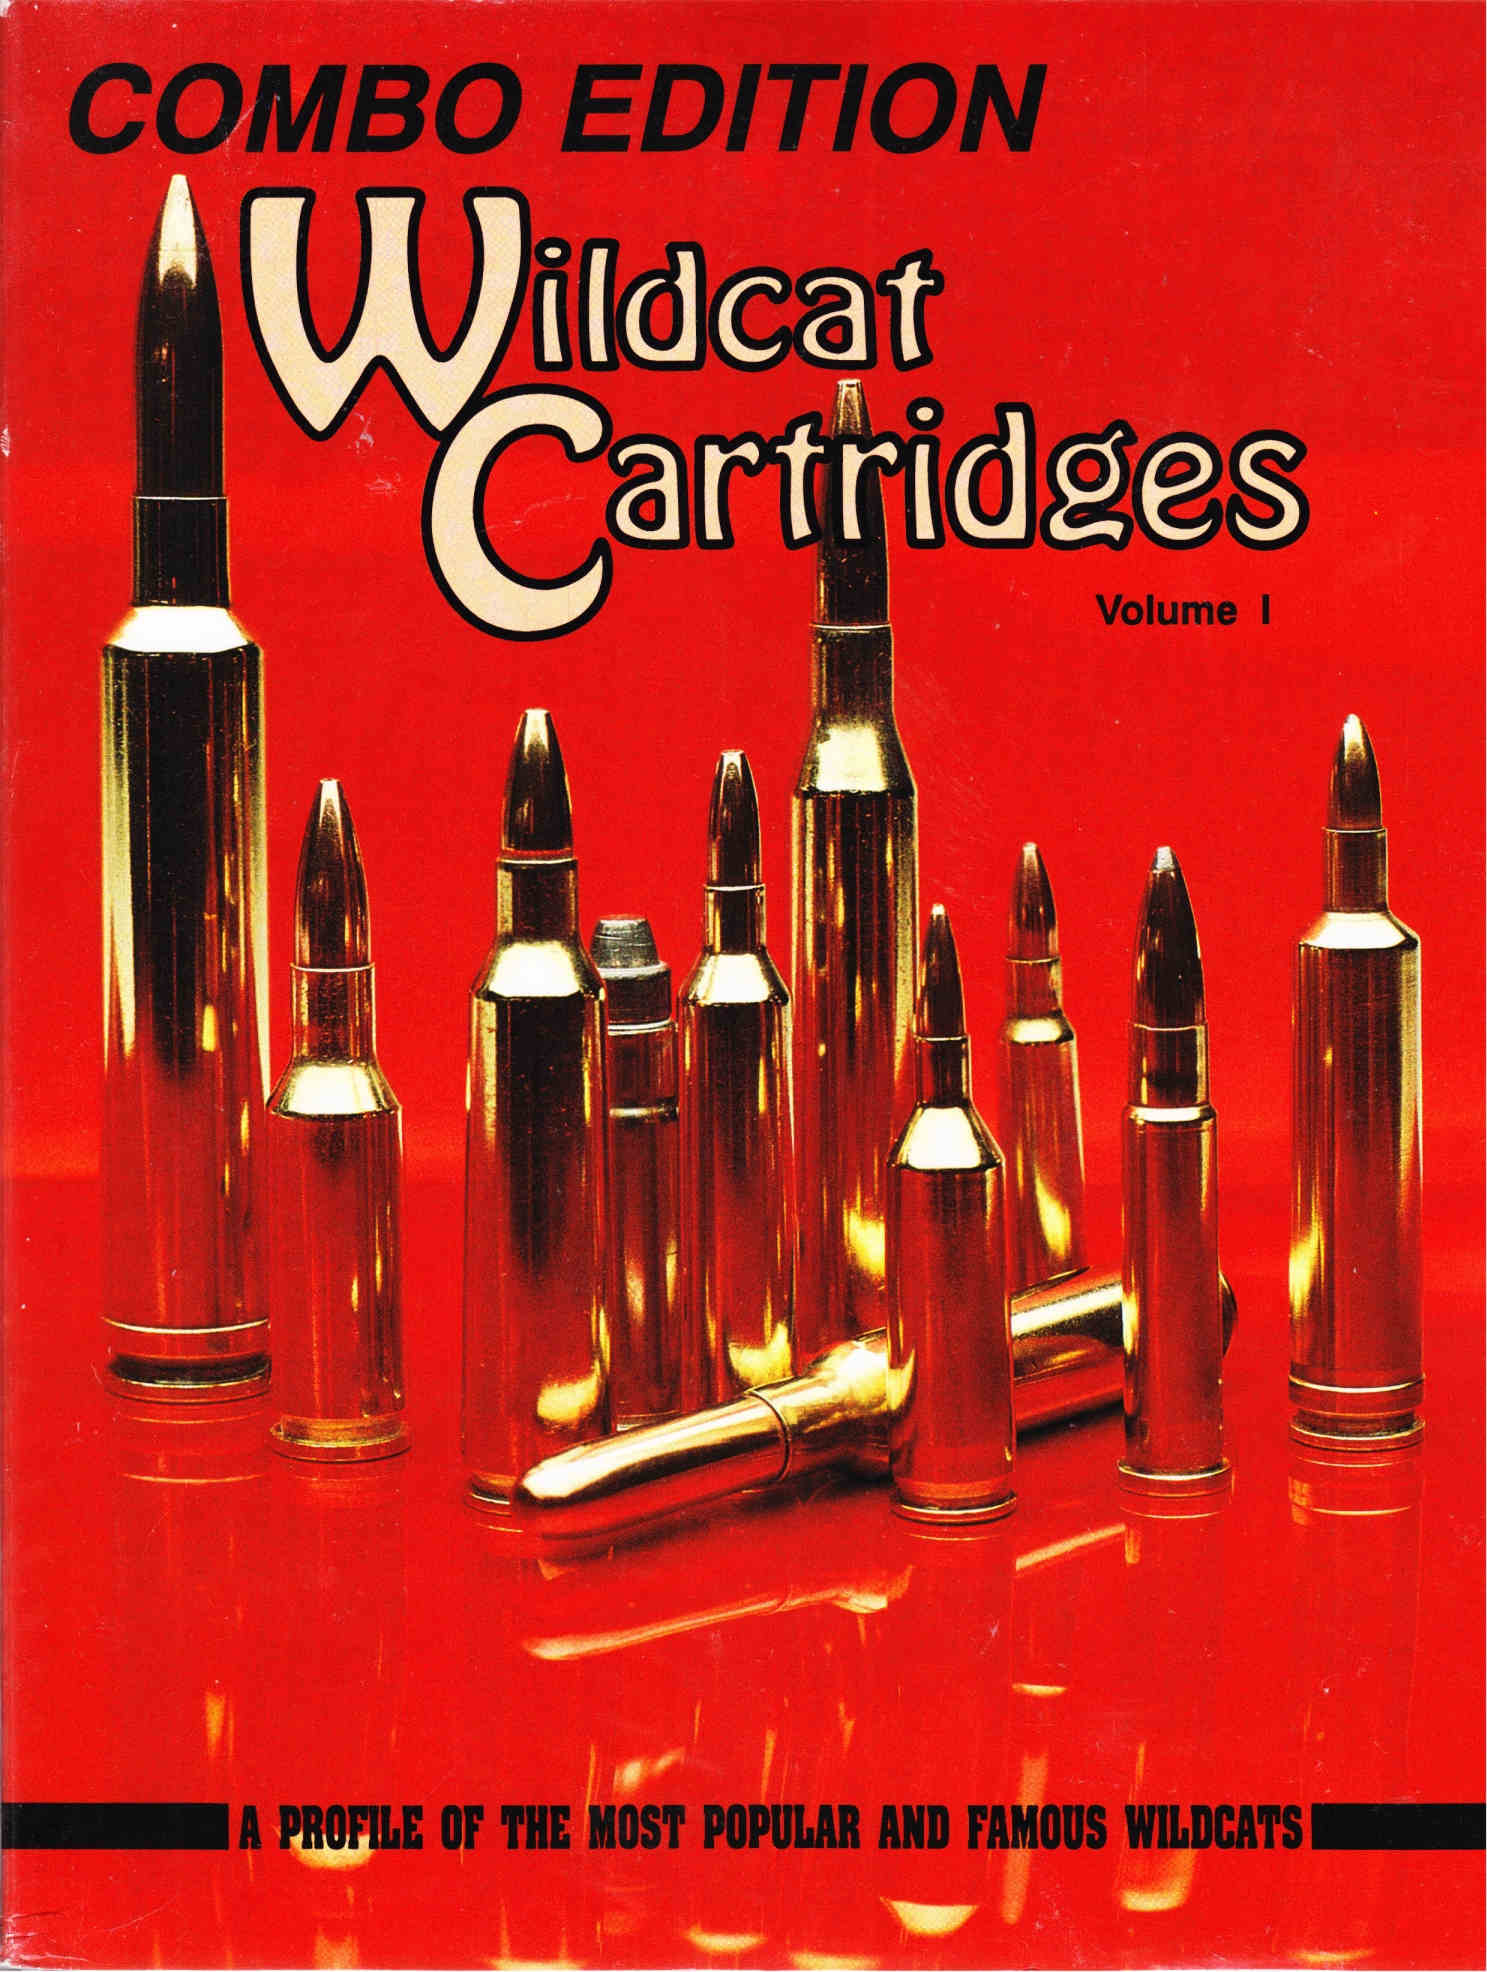 Wildcat Cartridges